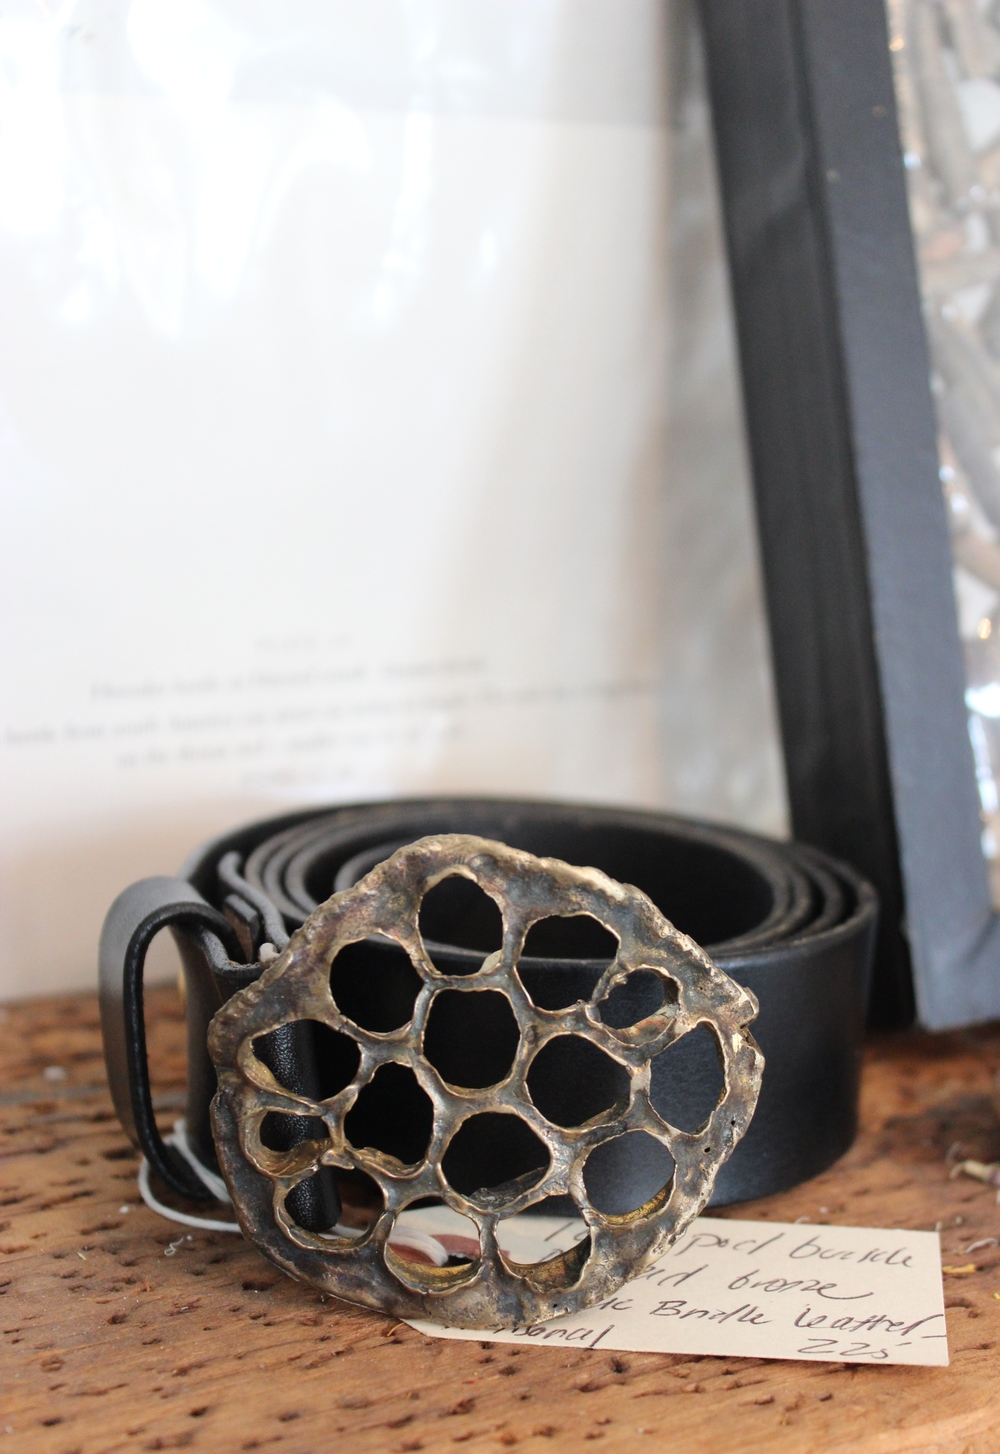 This belt buckle is reminiscent of Alexander McQuinn's honeycombs.   Its the skeleton of a lily pod.